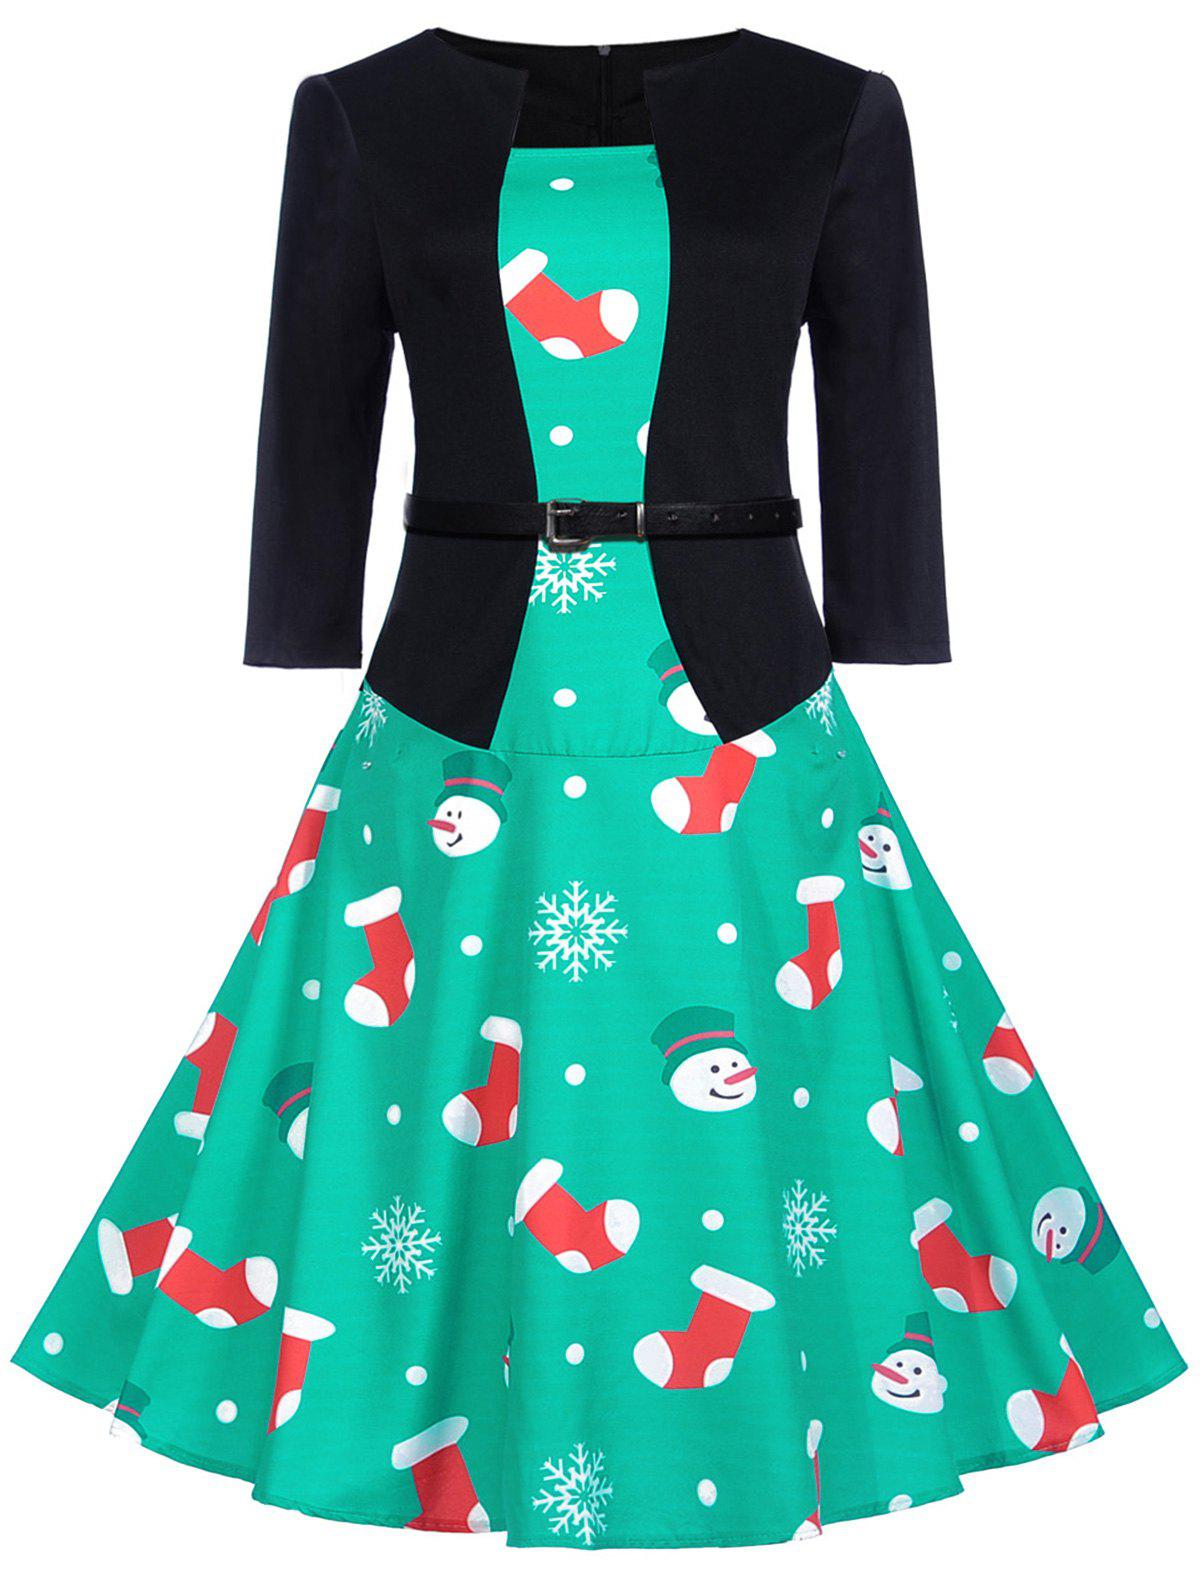 Chic Vintage Christmas Socks Snowman Print Flare Dress